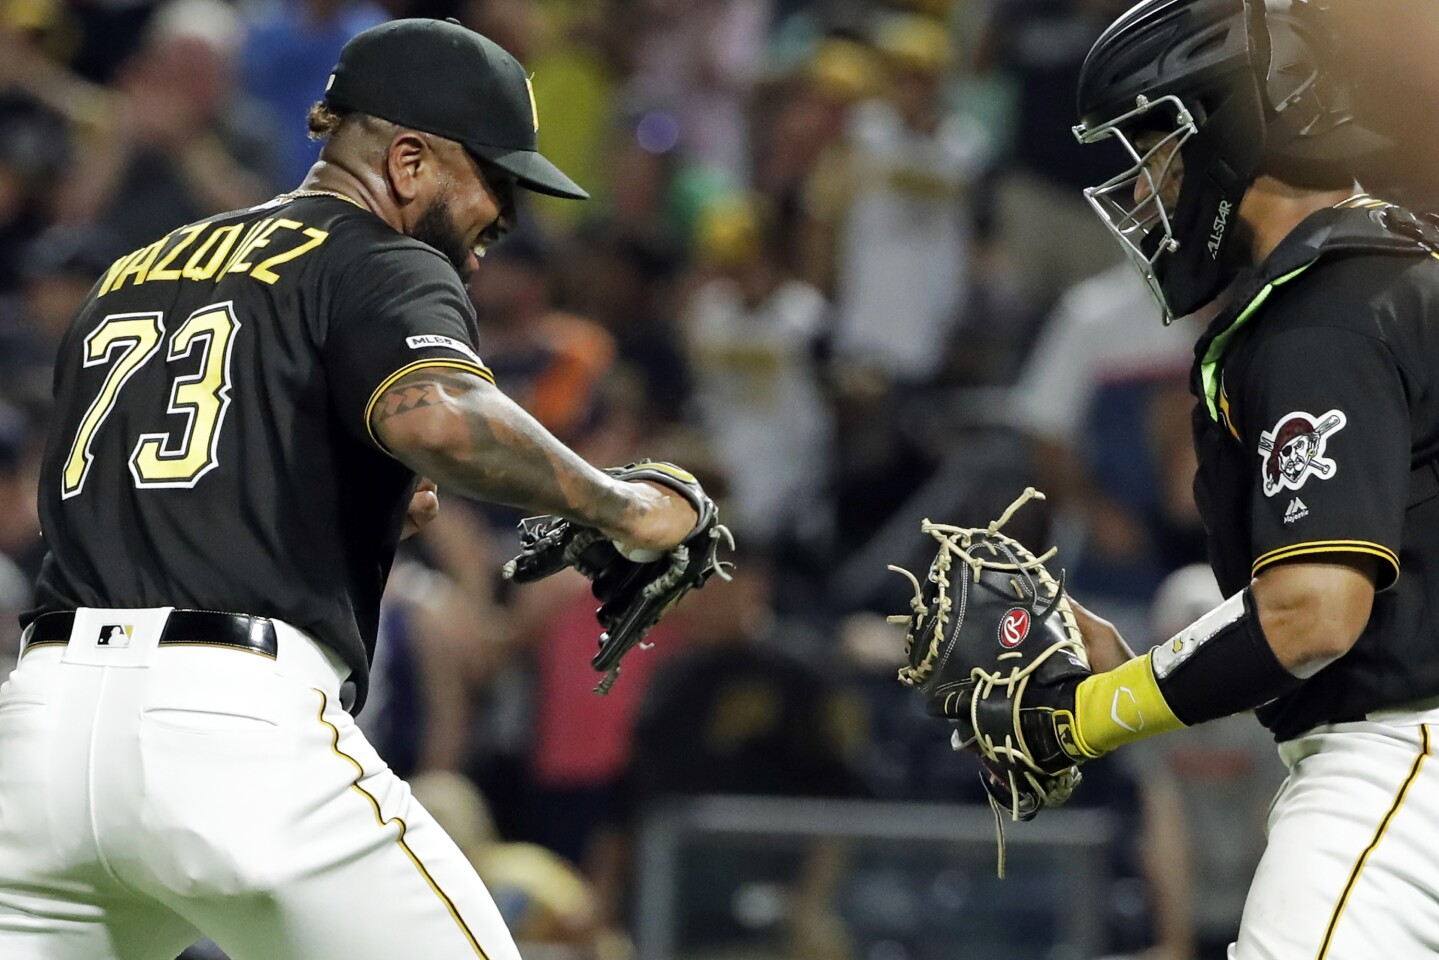 Padres on deck: Off to Pittsburgh